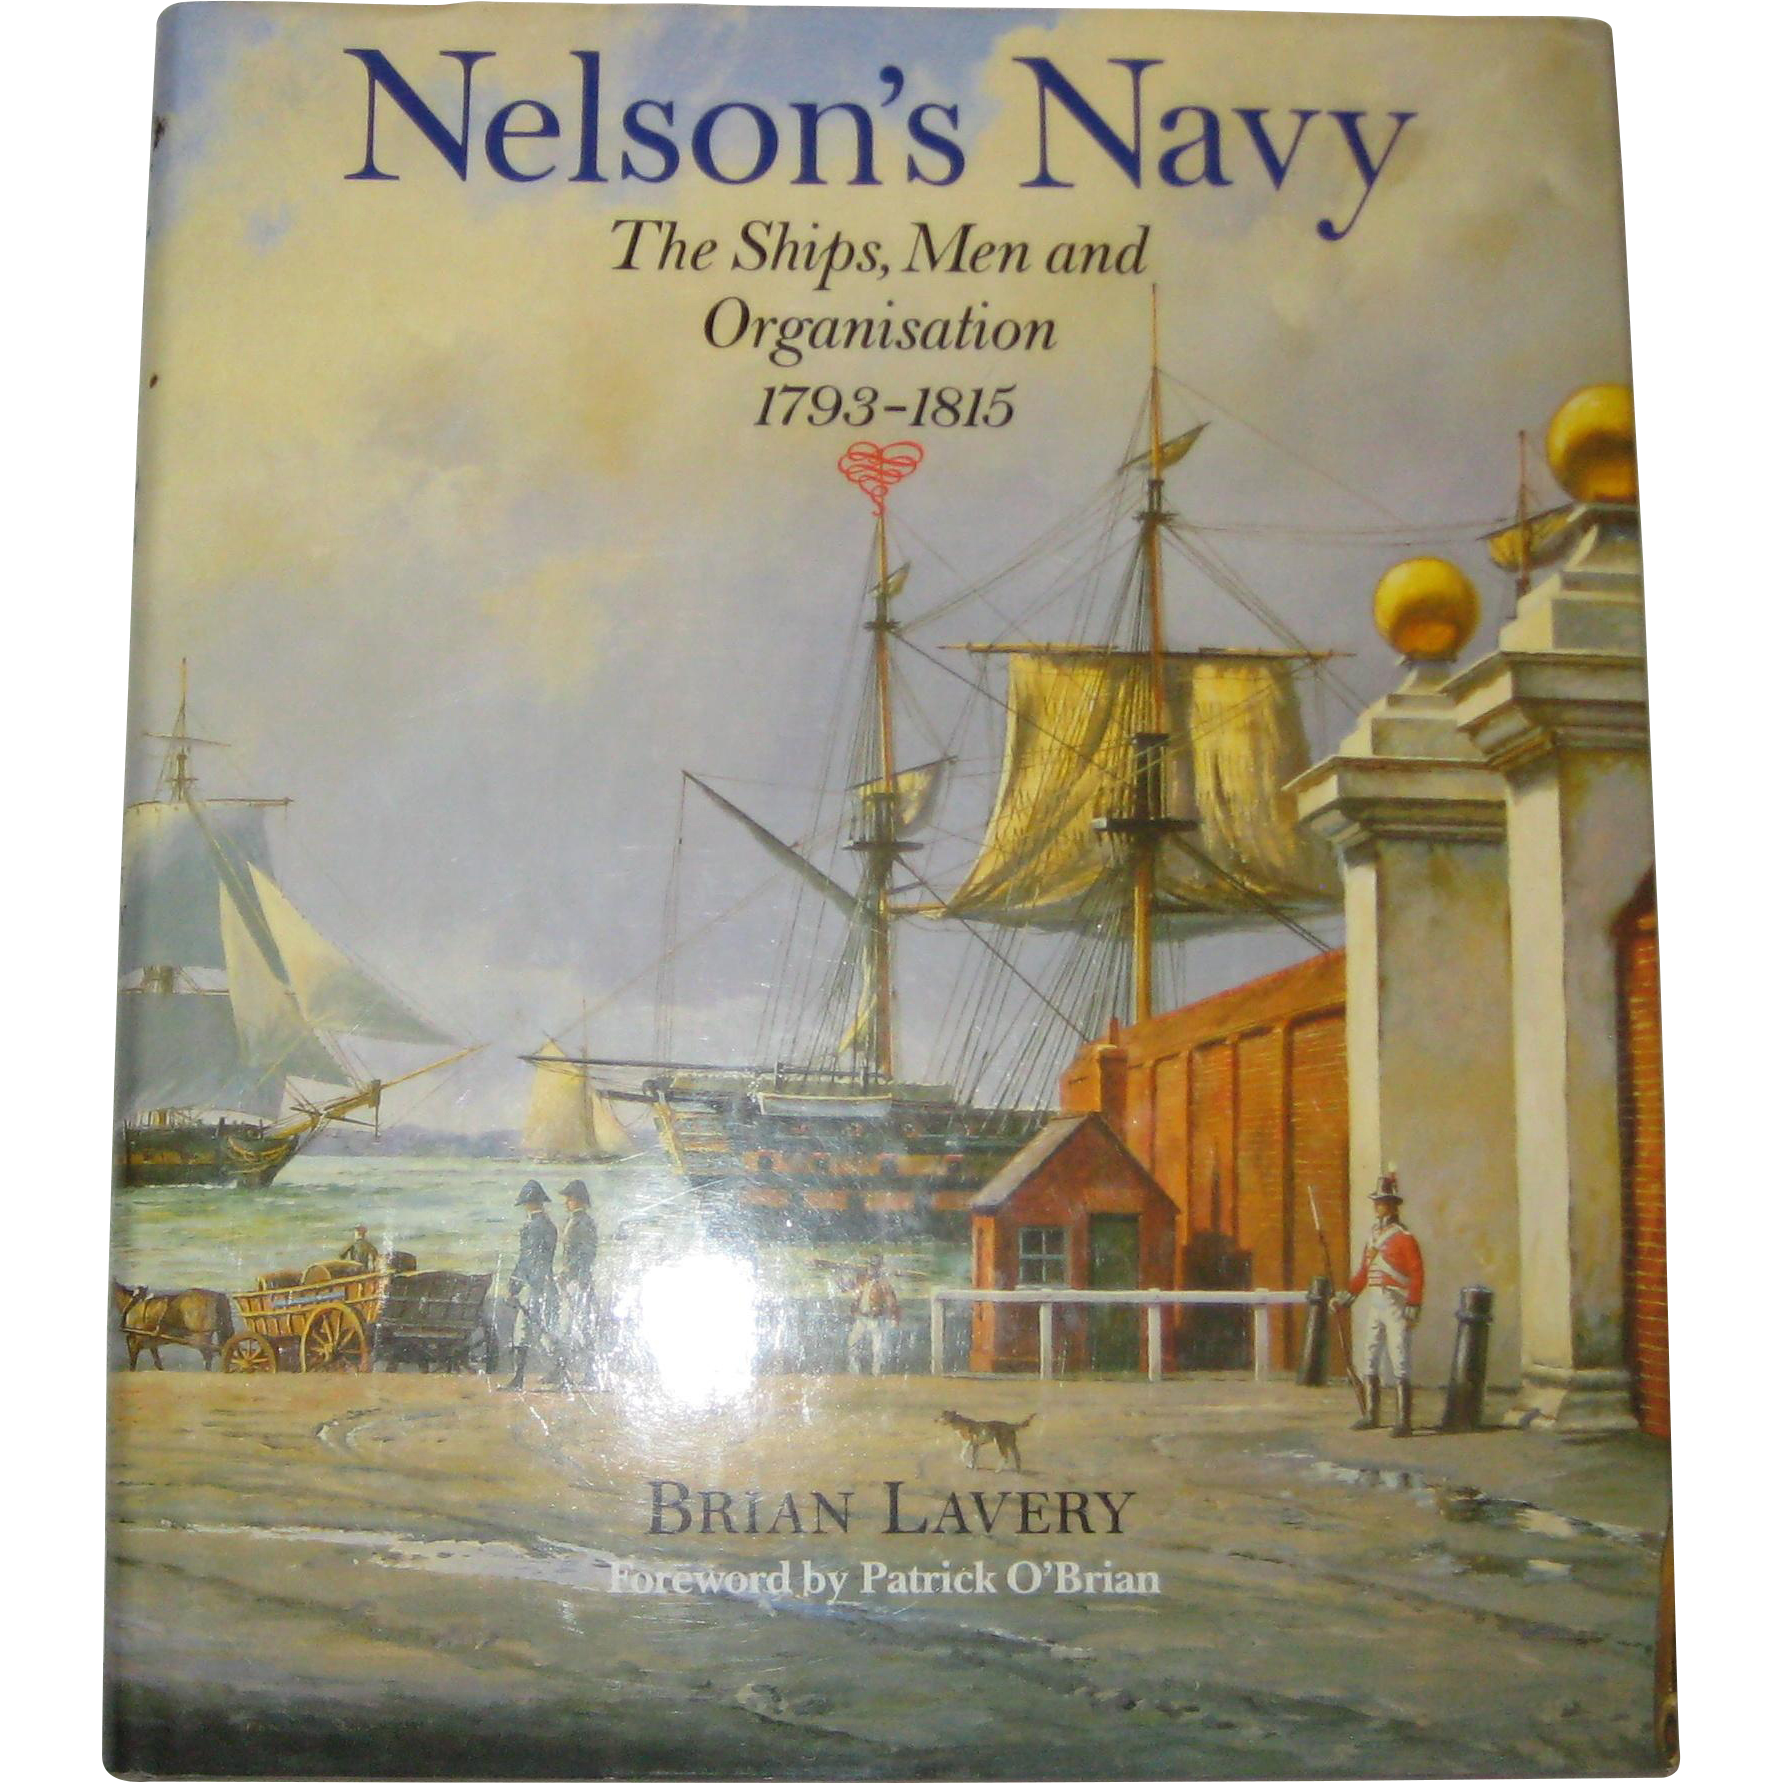 Nelson's Navy: The Ships, Men, and Organization, 1793-1815 - Brian Lavery